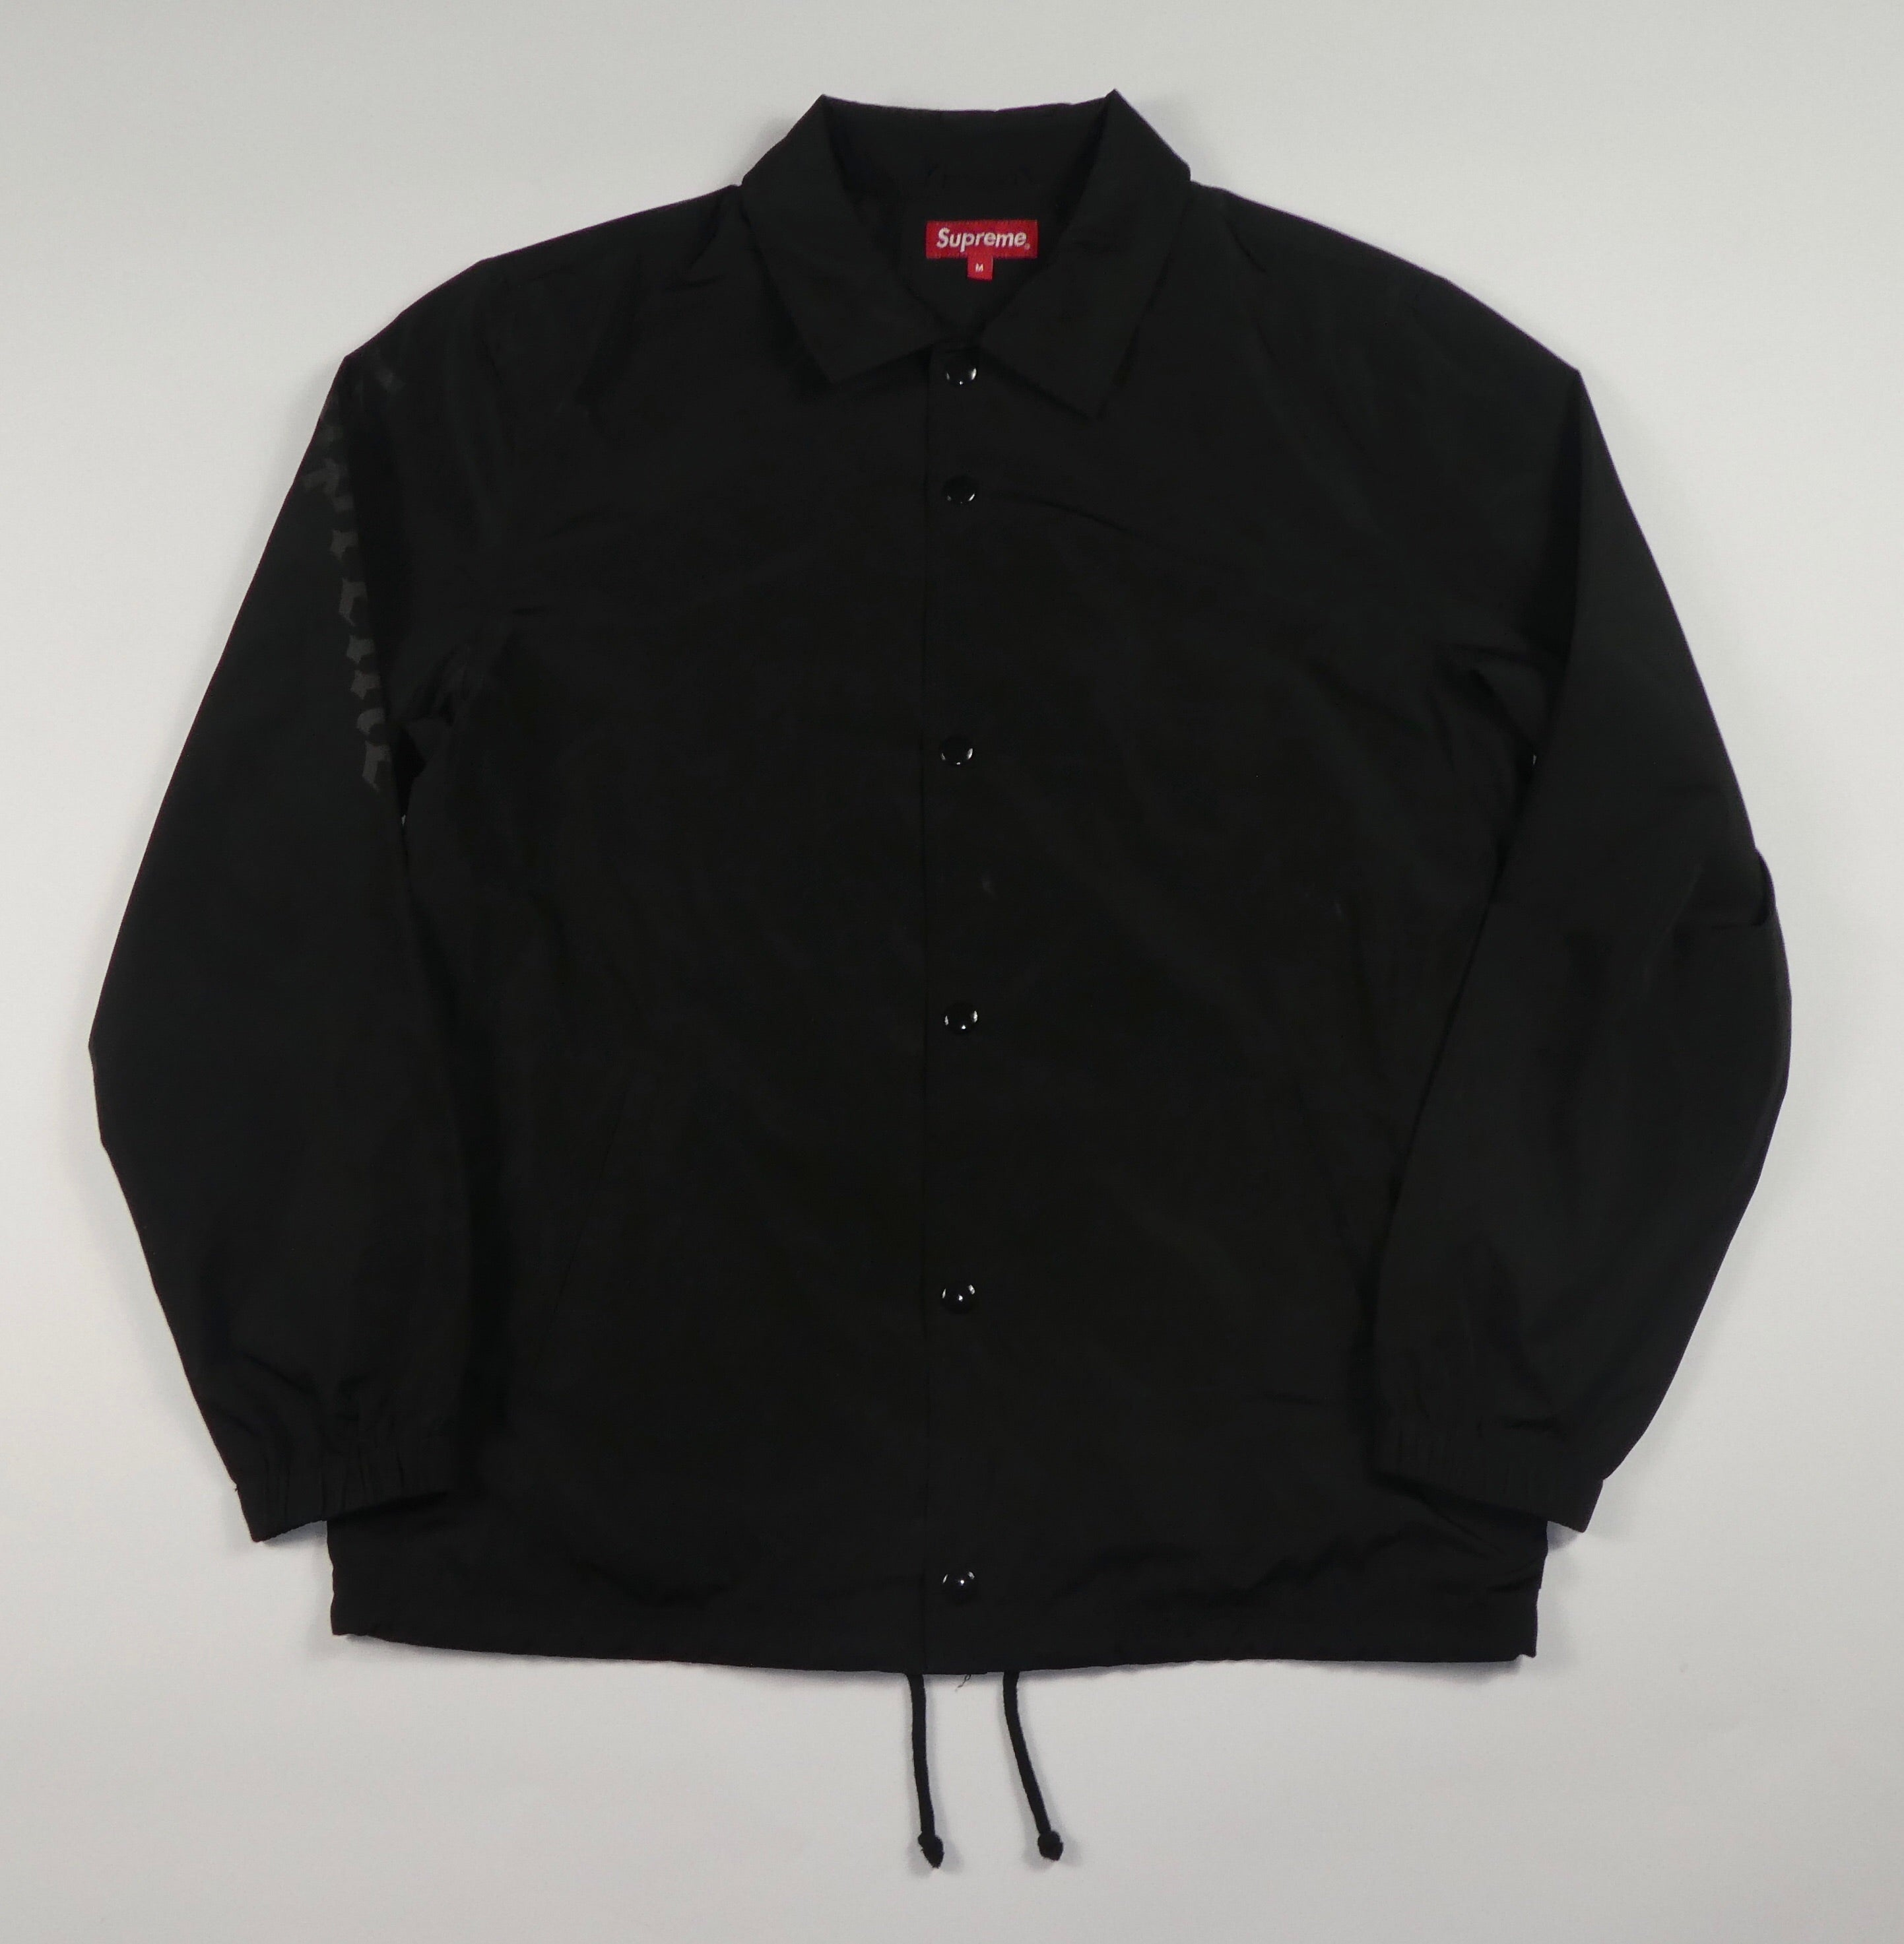 Supreme x Slayer 'Cutters' Coaches Jacket